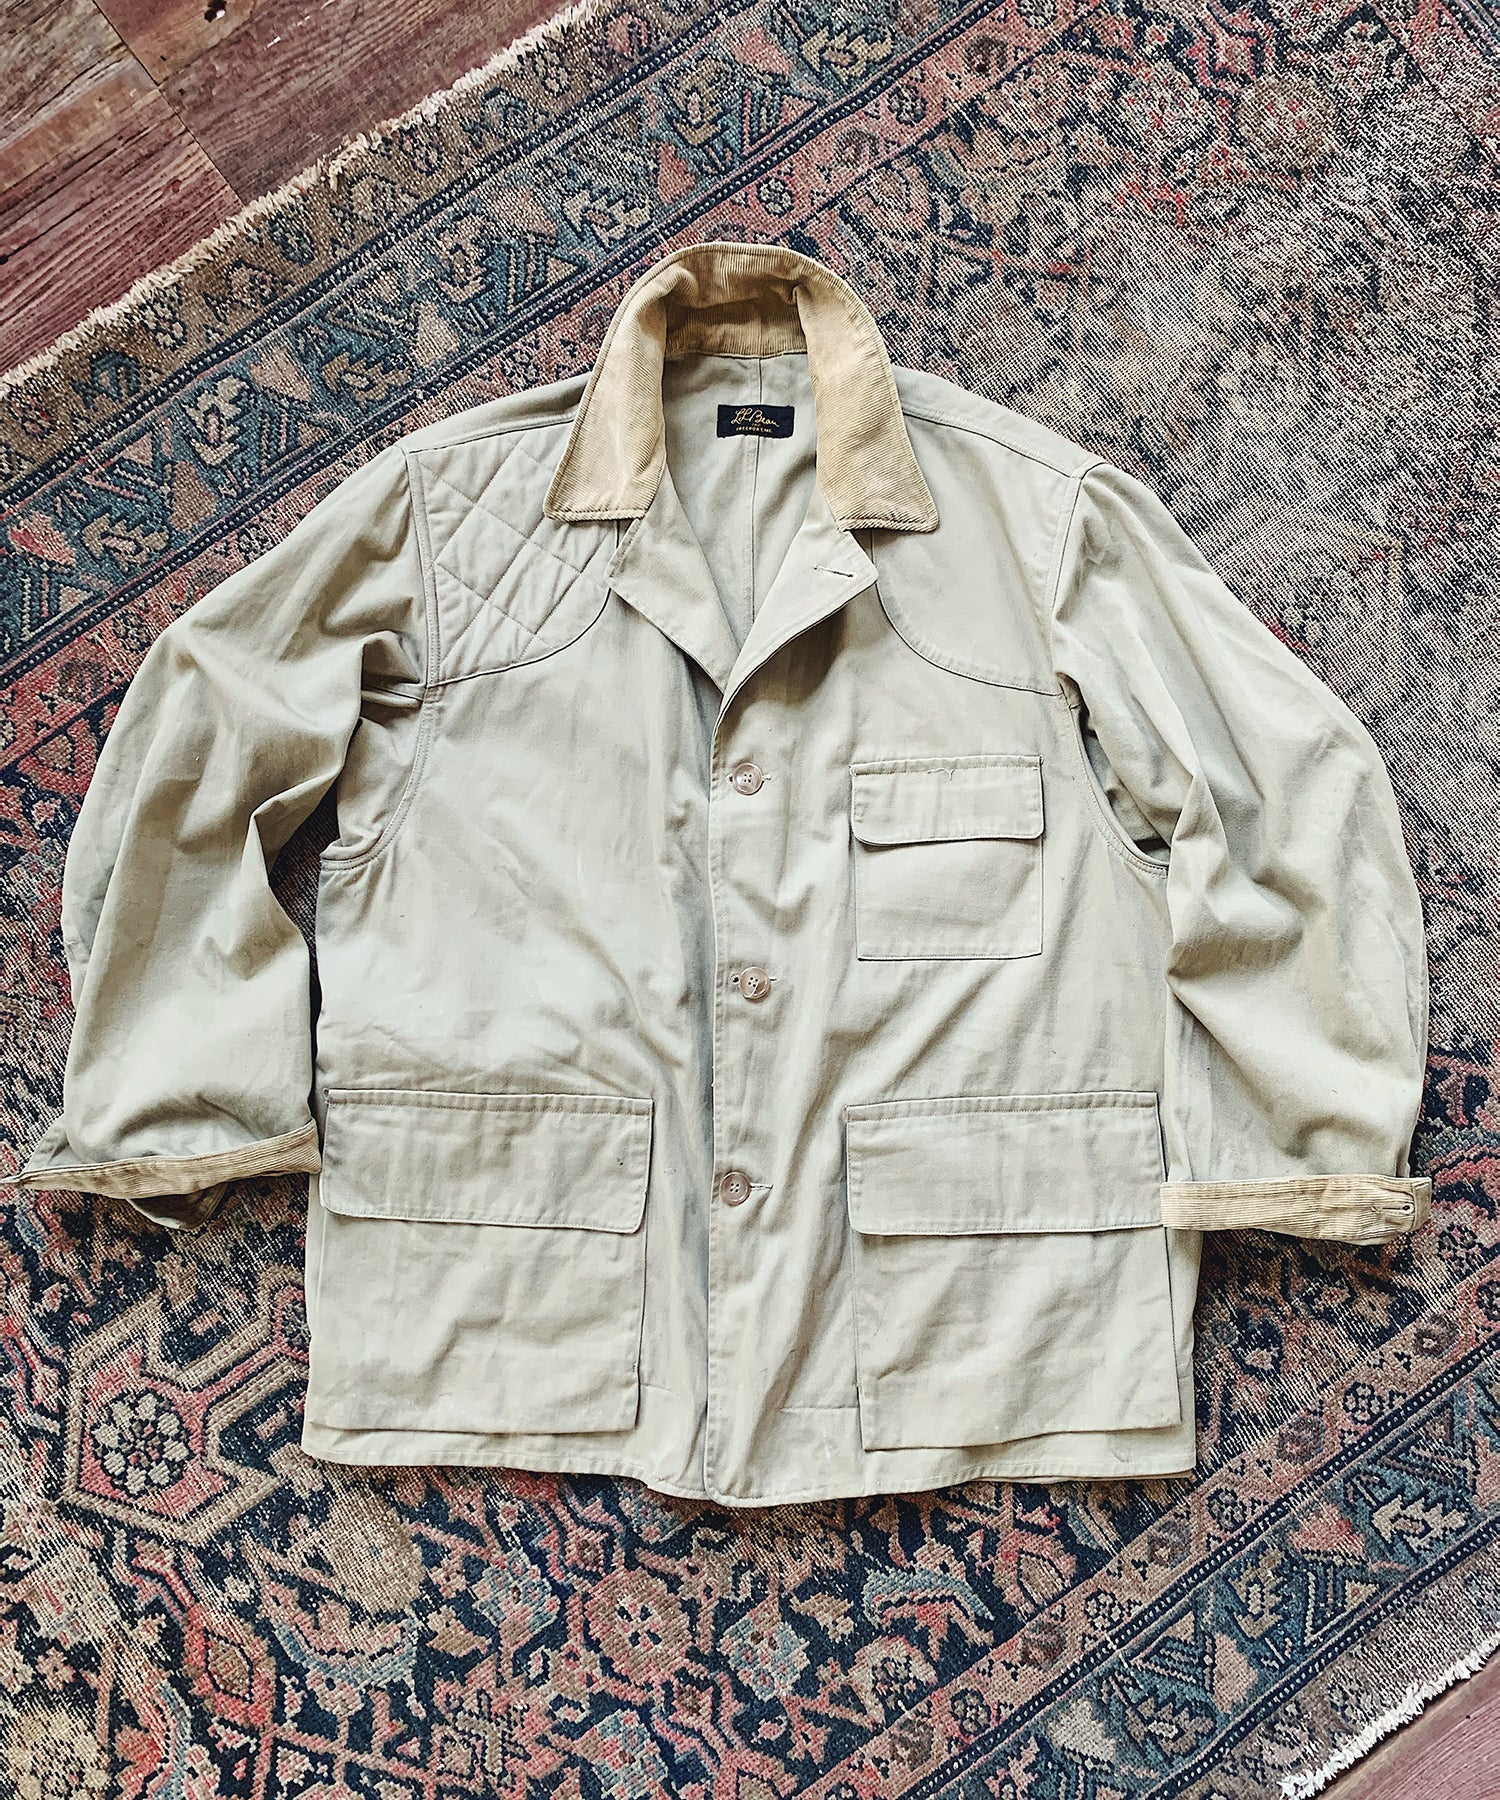 Item #26 - Todd Snyder x Wooden Sleepers 1950's Sportsman Jacket in Tan- SOLD OUT